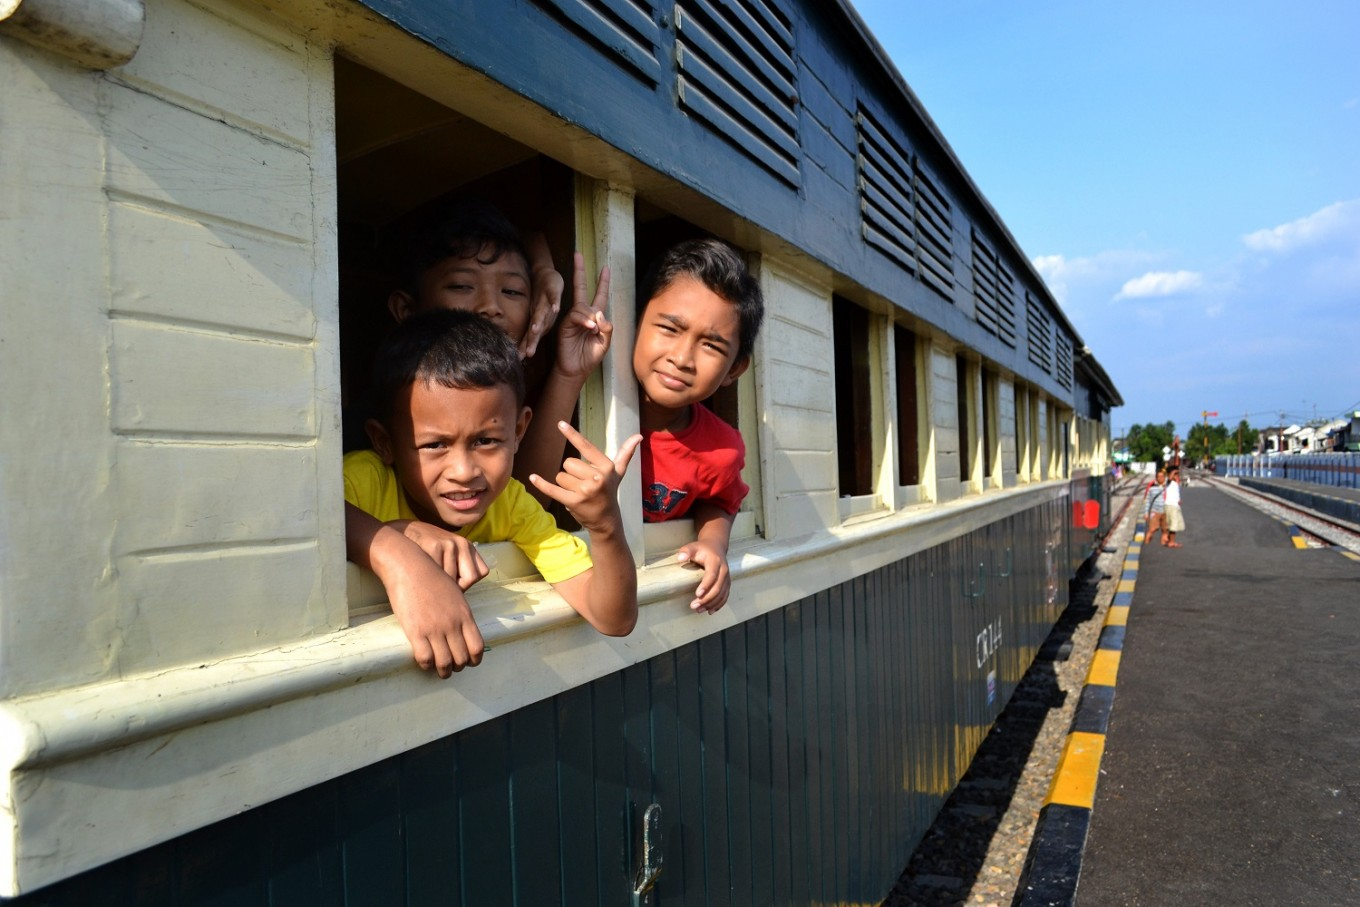 Children ride the Jaladara steam train in Surakarta, Central Java.